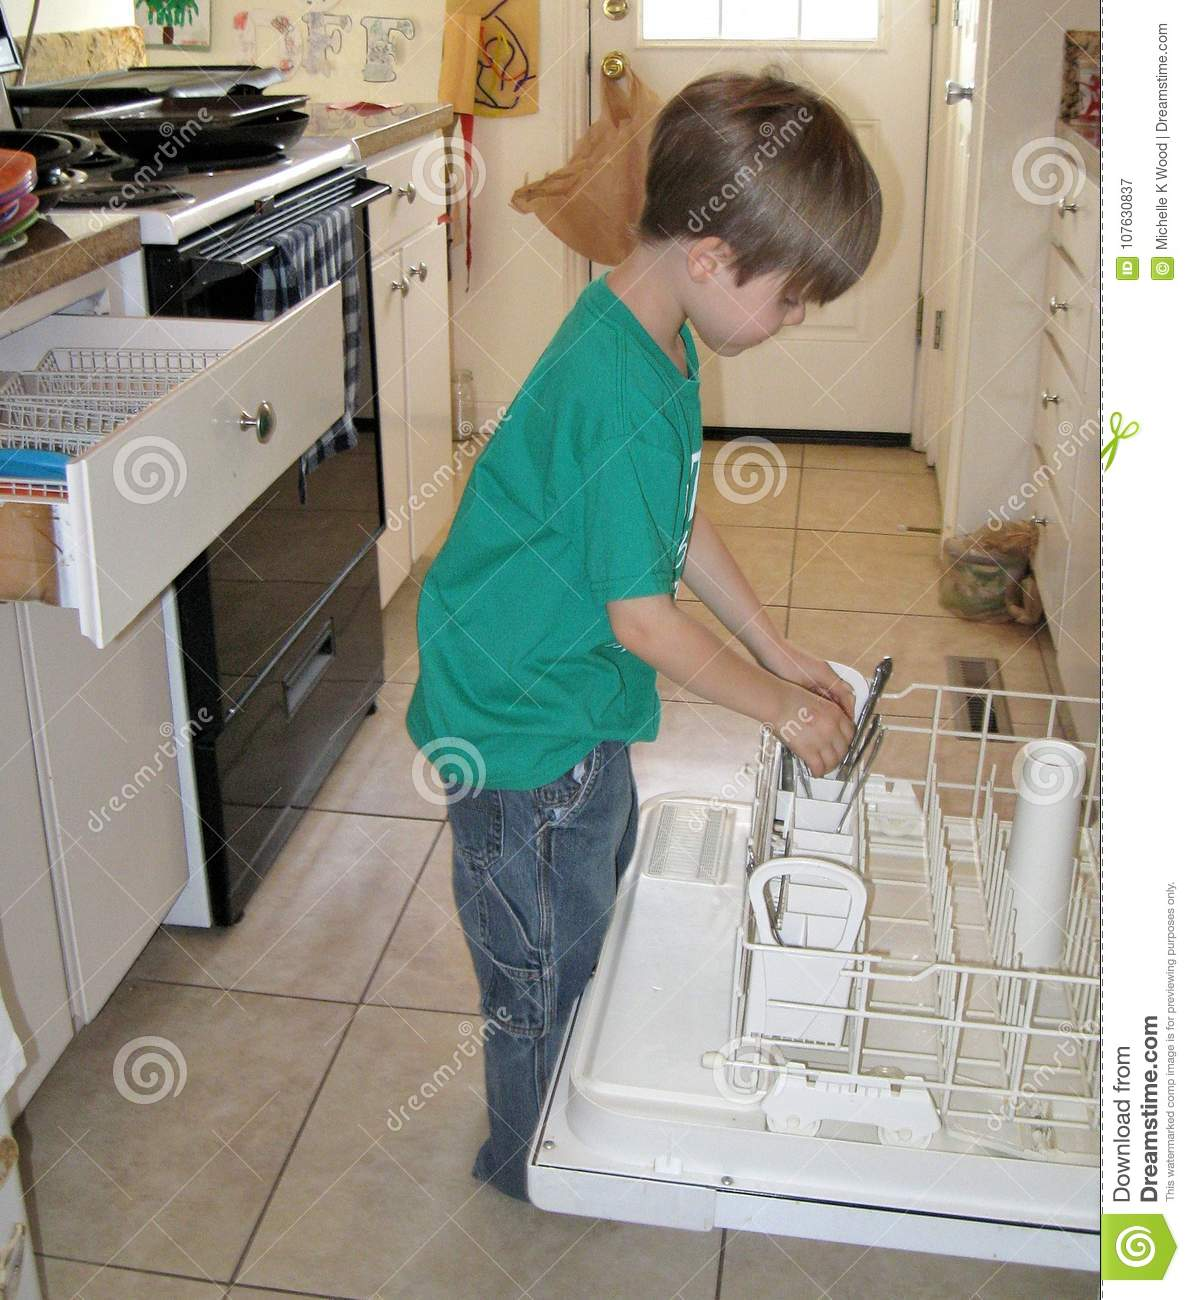 Boy taking silverware out of dishwasher